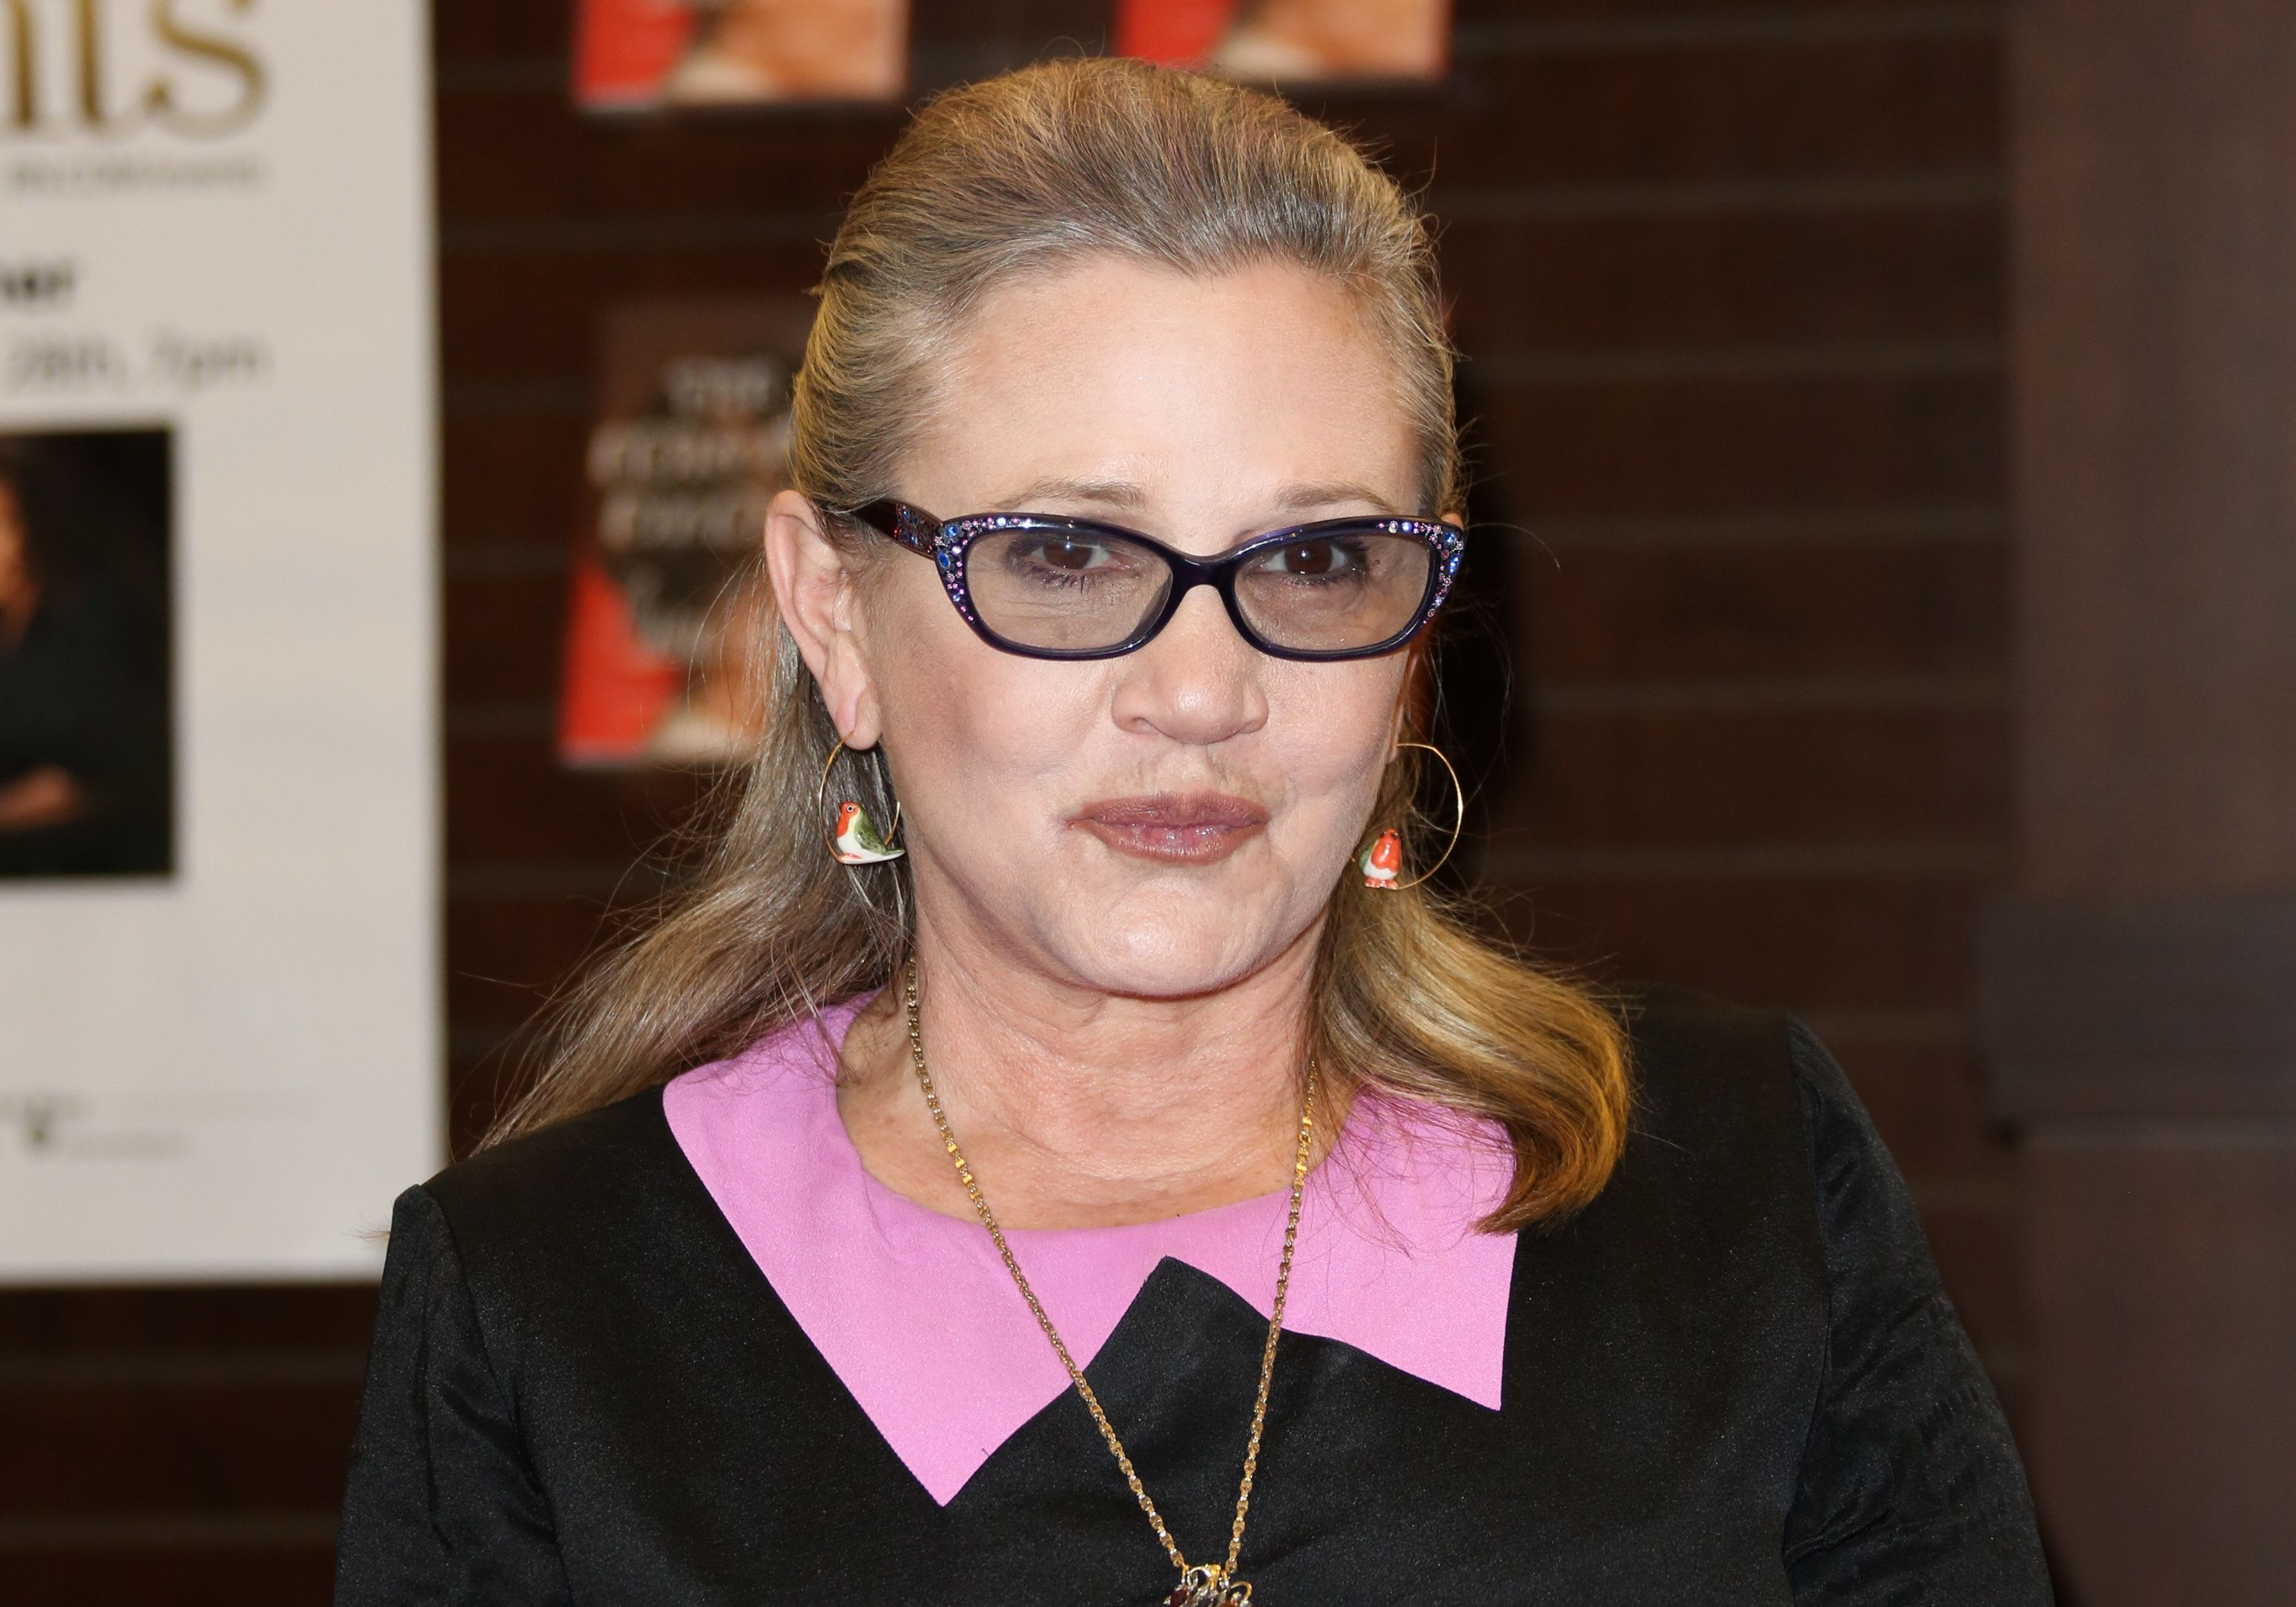 LOS ANGELES, CA - NOVEMBER 28:  Actress Carrie Fisher signs copies of her new book 'The Princess Diarist' at Barnes & Noble at The Grove on November 28, 2016 in Los Angeles, California.  (Photo by Paul Archuleta/FilmMagic)